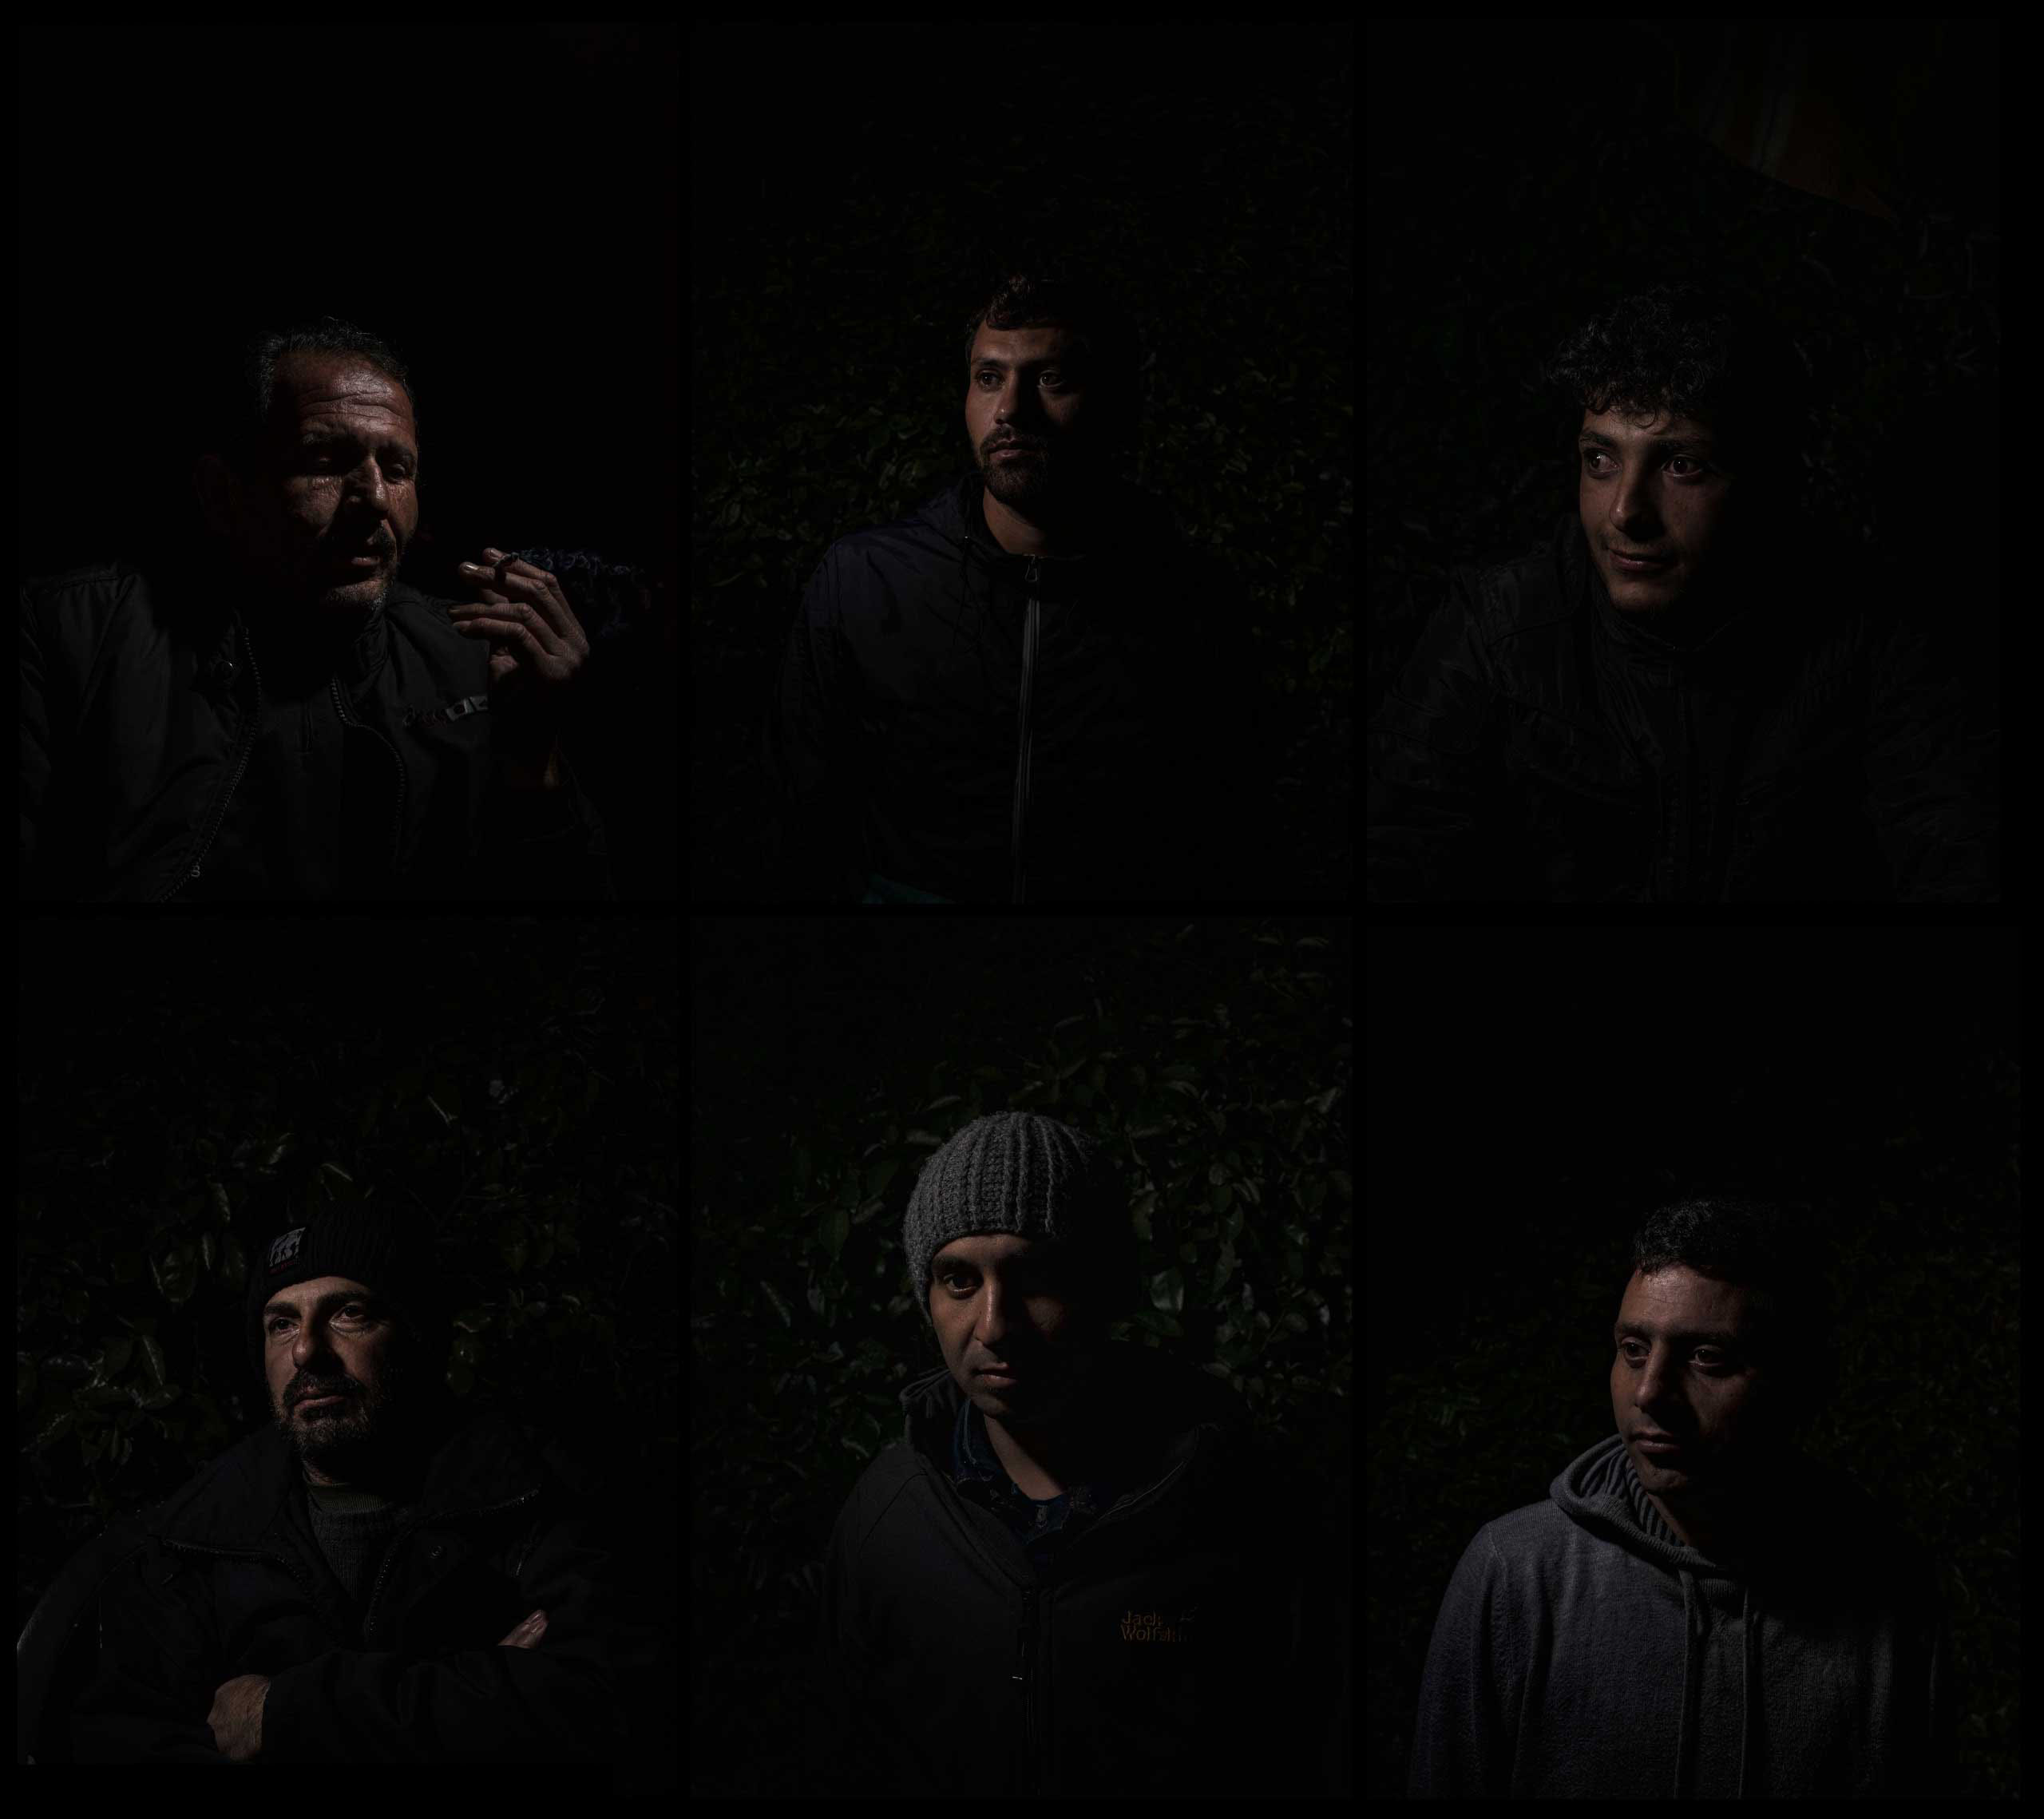 A grid of portraits of Syrian refugees who have recently arrived in Calais, France, 2015.